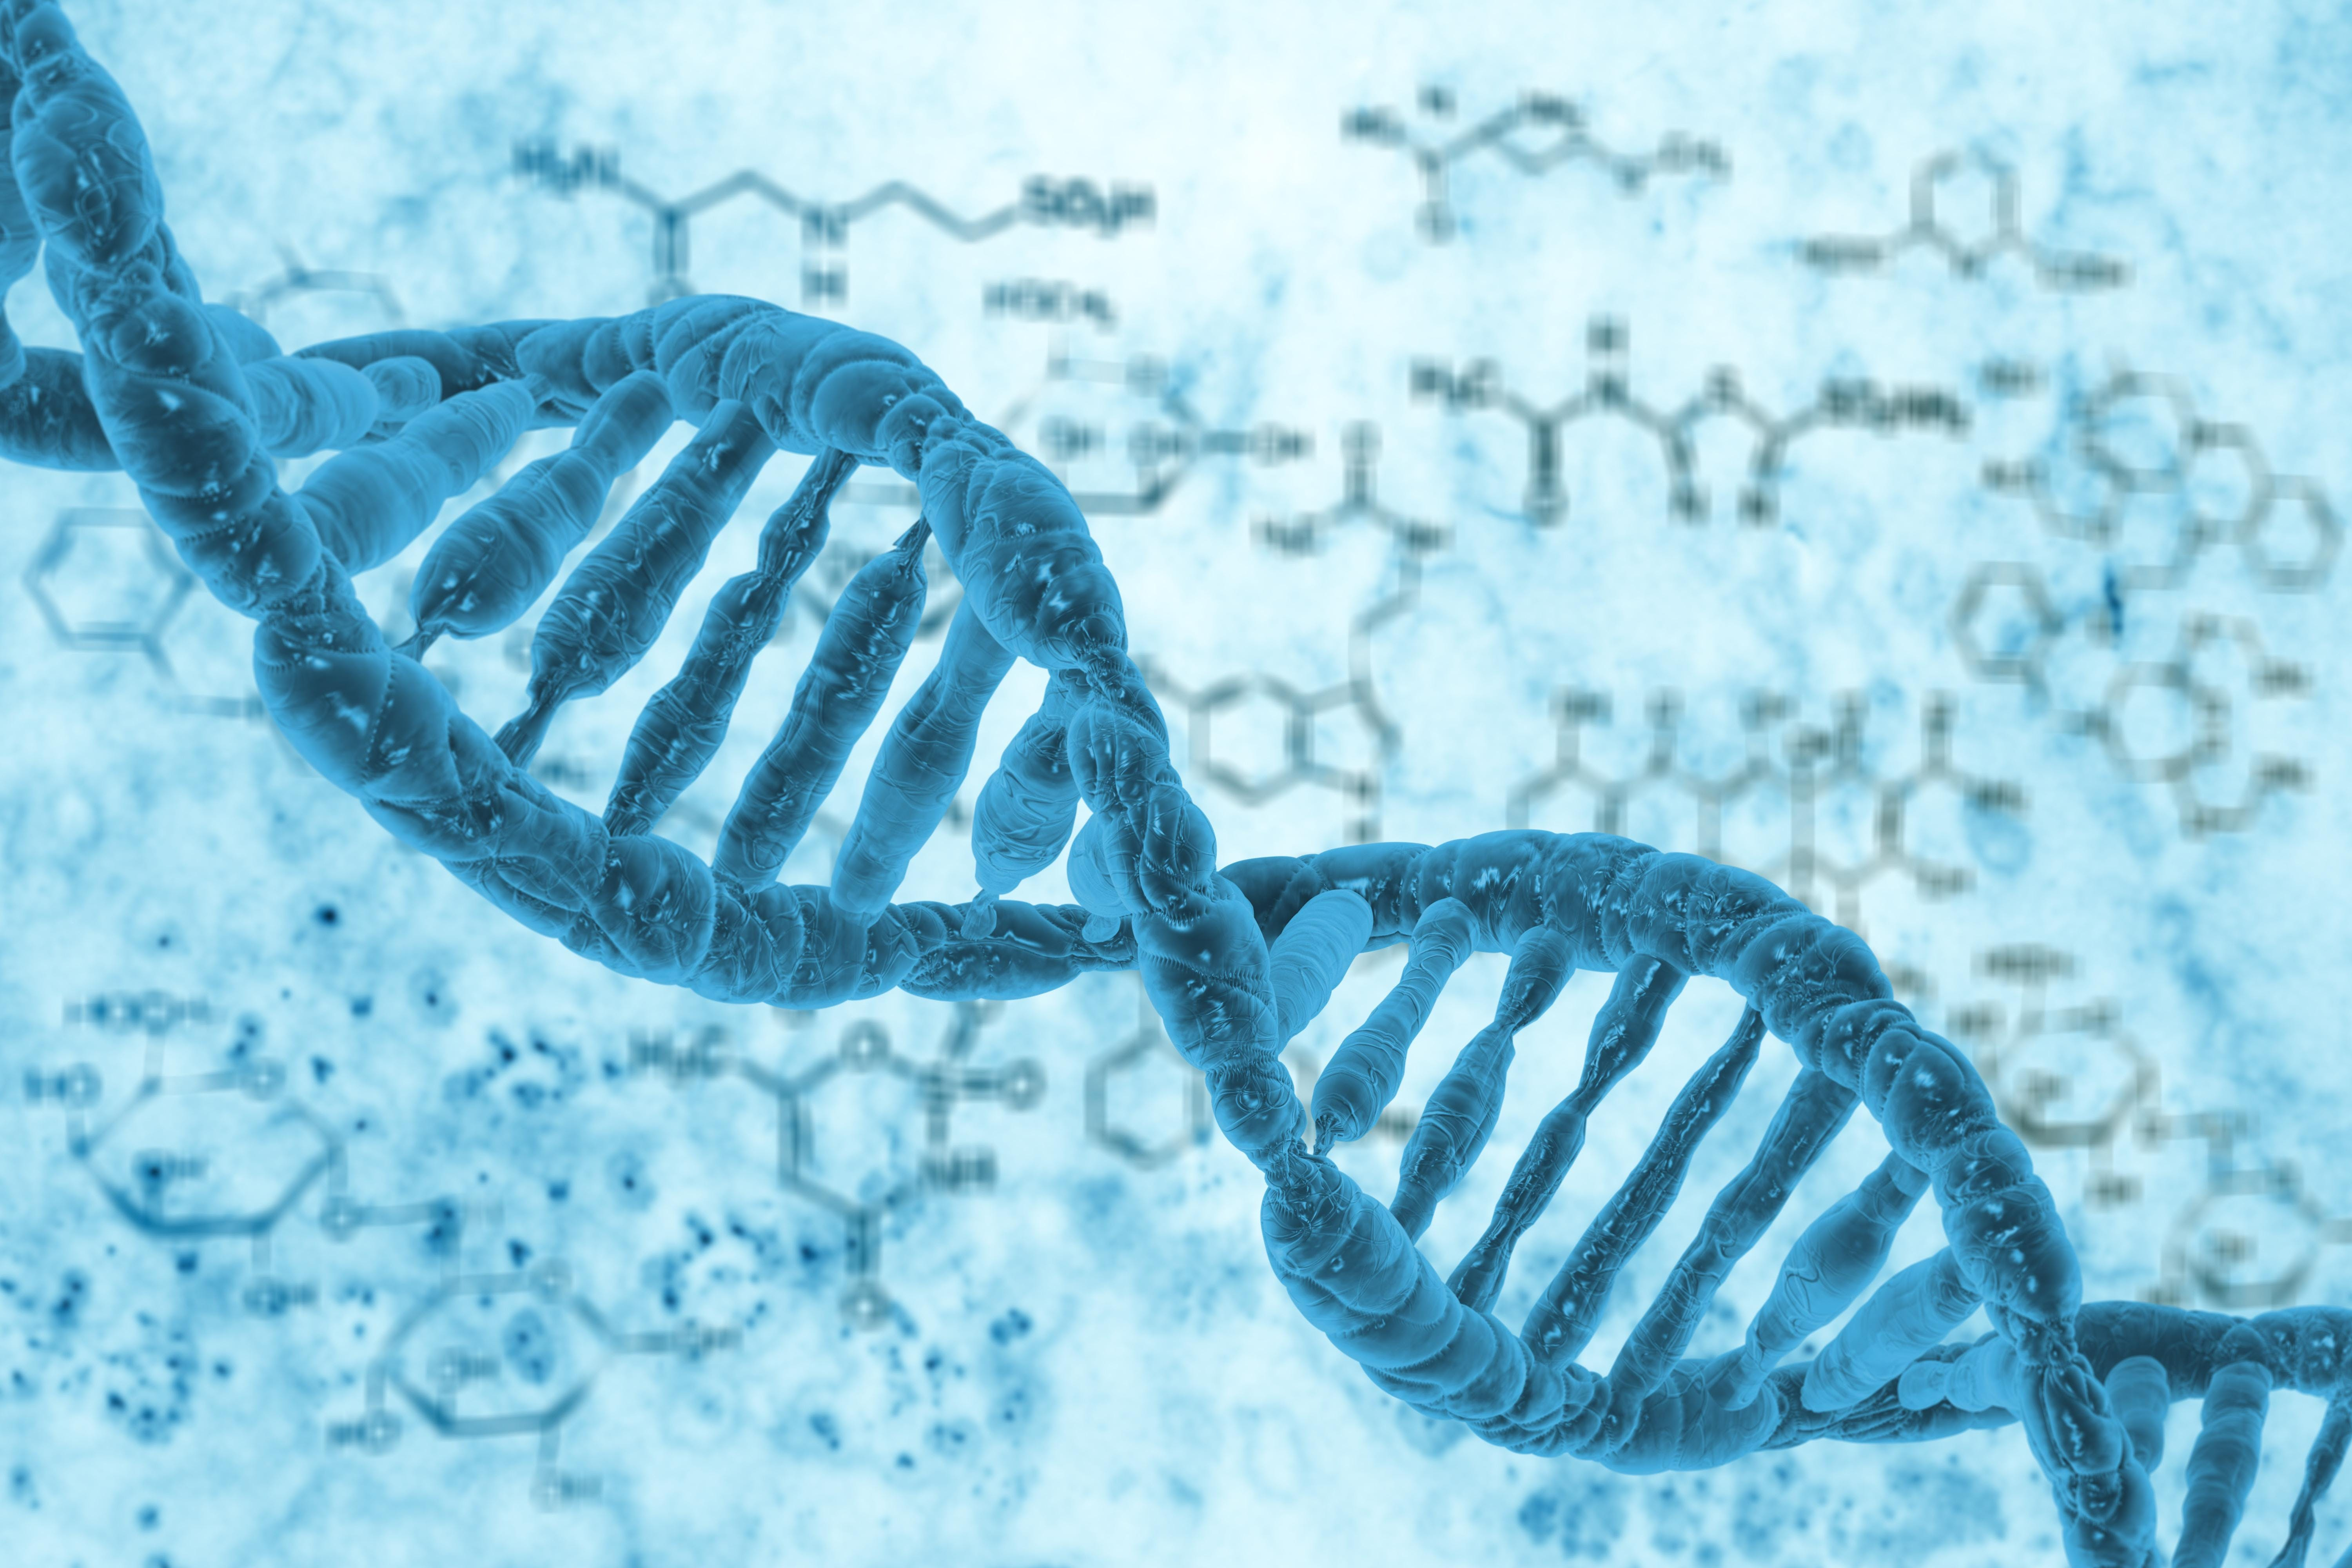 Mini-Medical School: Cracking Your Genetic Code - What Do You Want to Know?